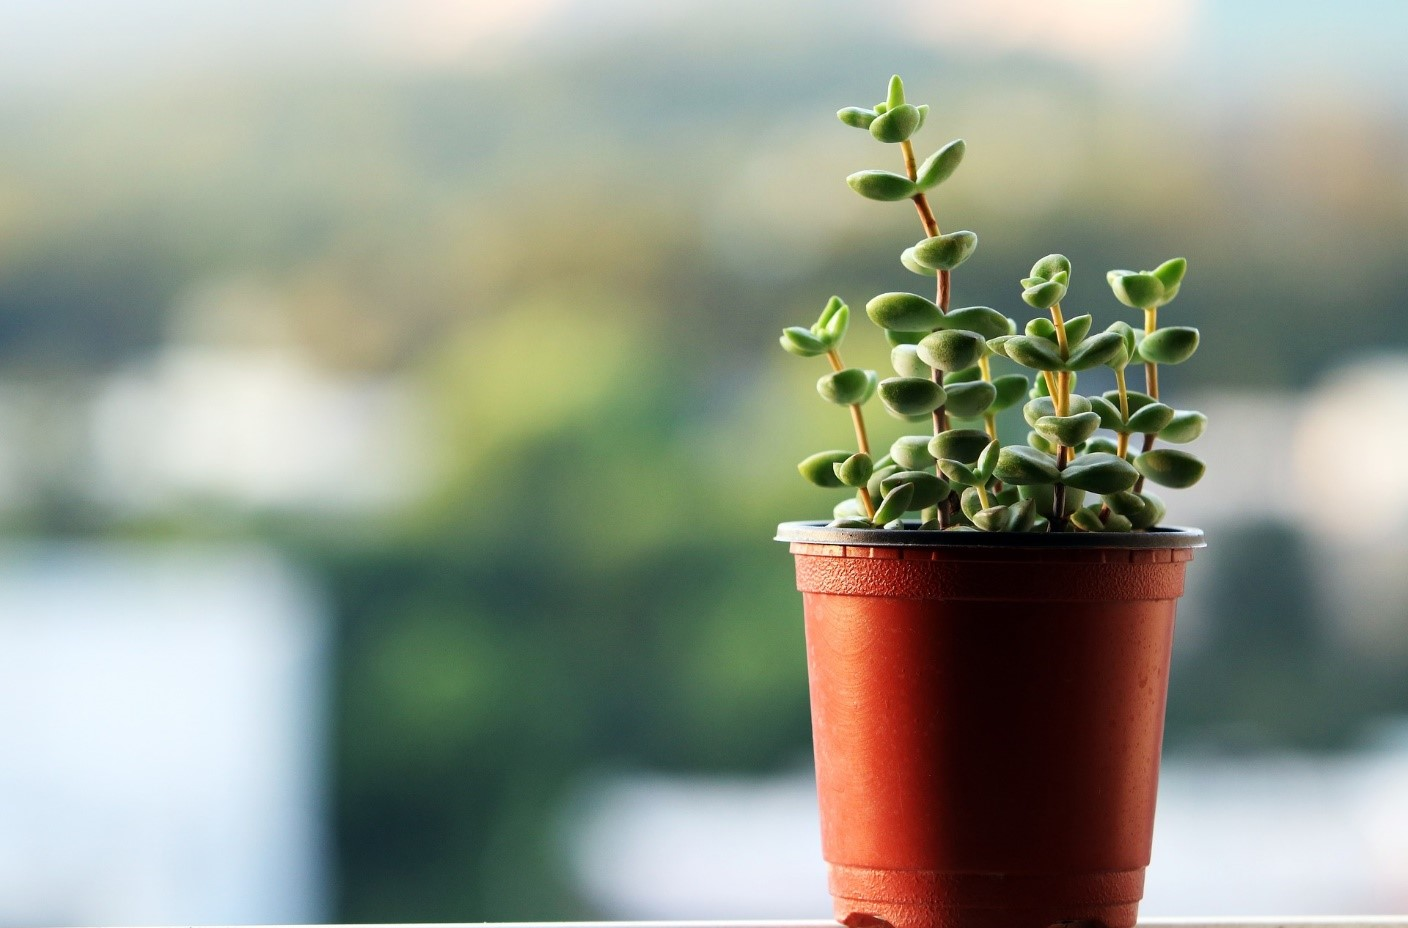 5-office-plants-that-can-spruce-up-your-workplace-1